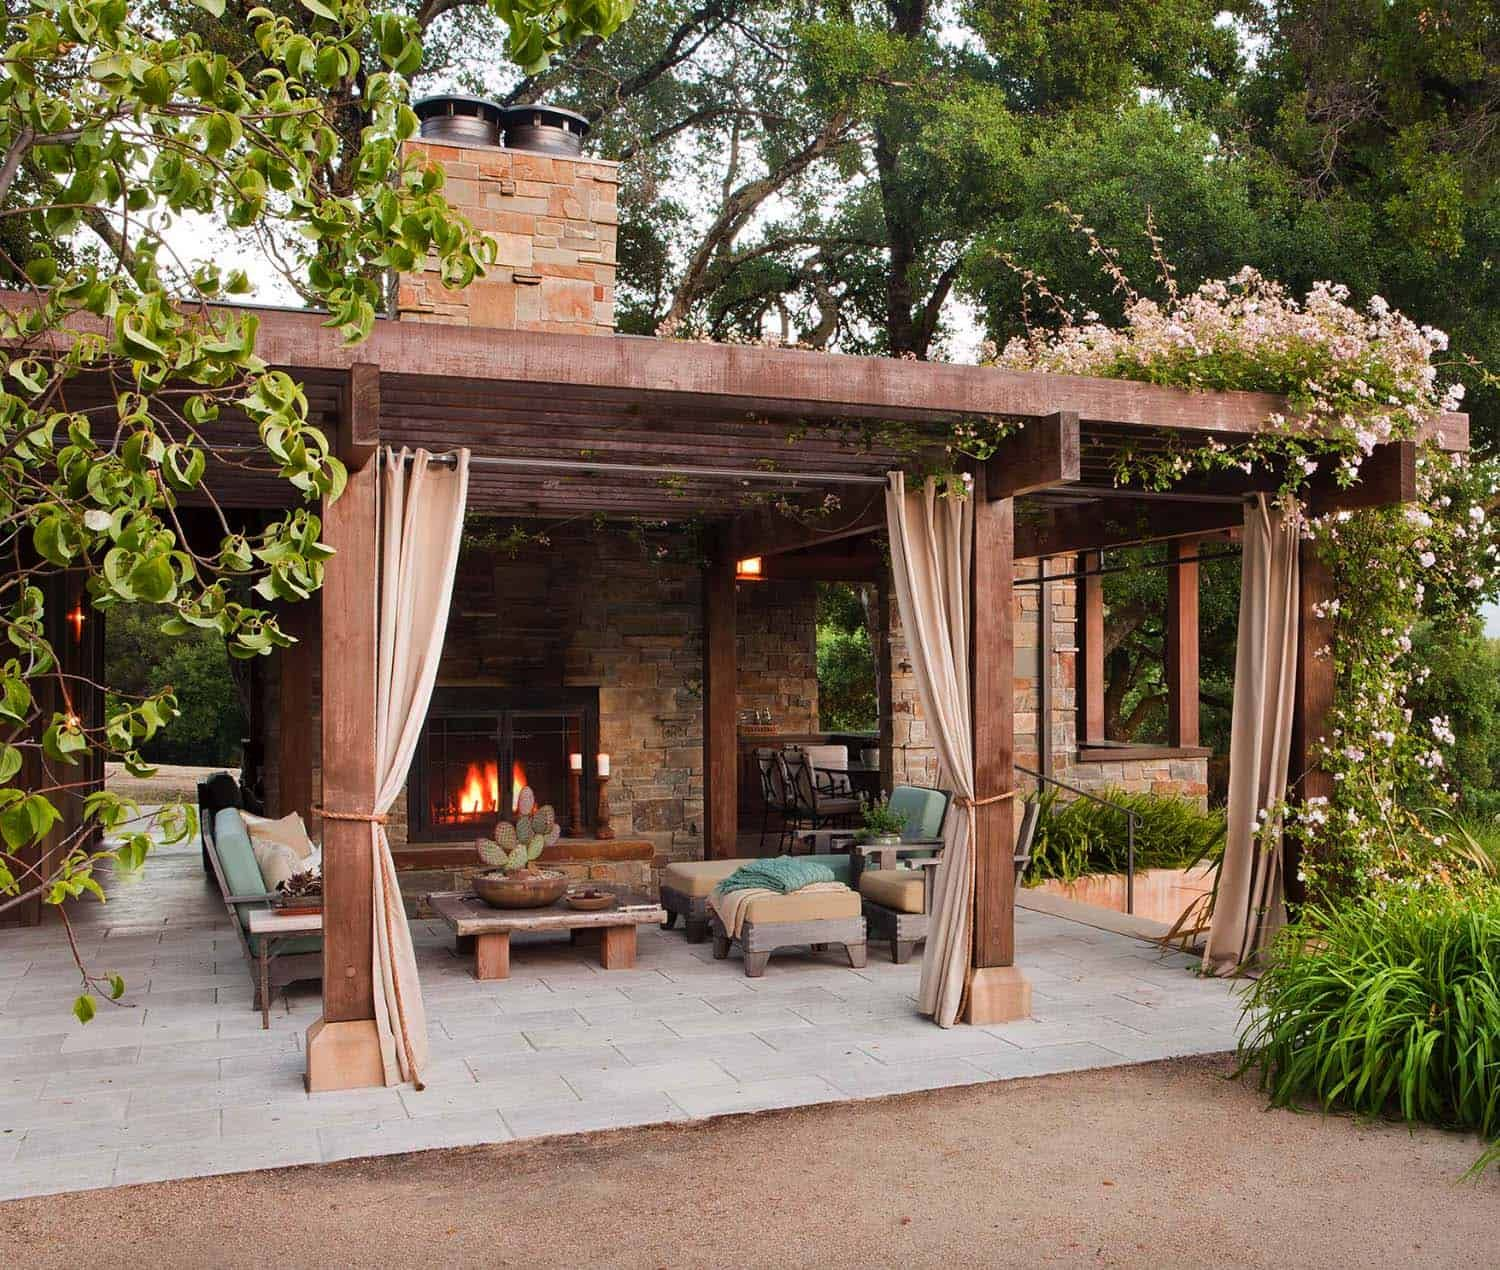 30 Irresistible Outdoor Fireplace Ideas That Will Leave You Awe Struck Outdoor Fireplace Designs Outdoor Fireplace Ideas Backyards Patio Design